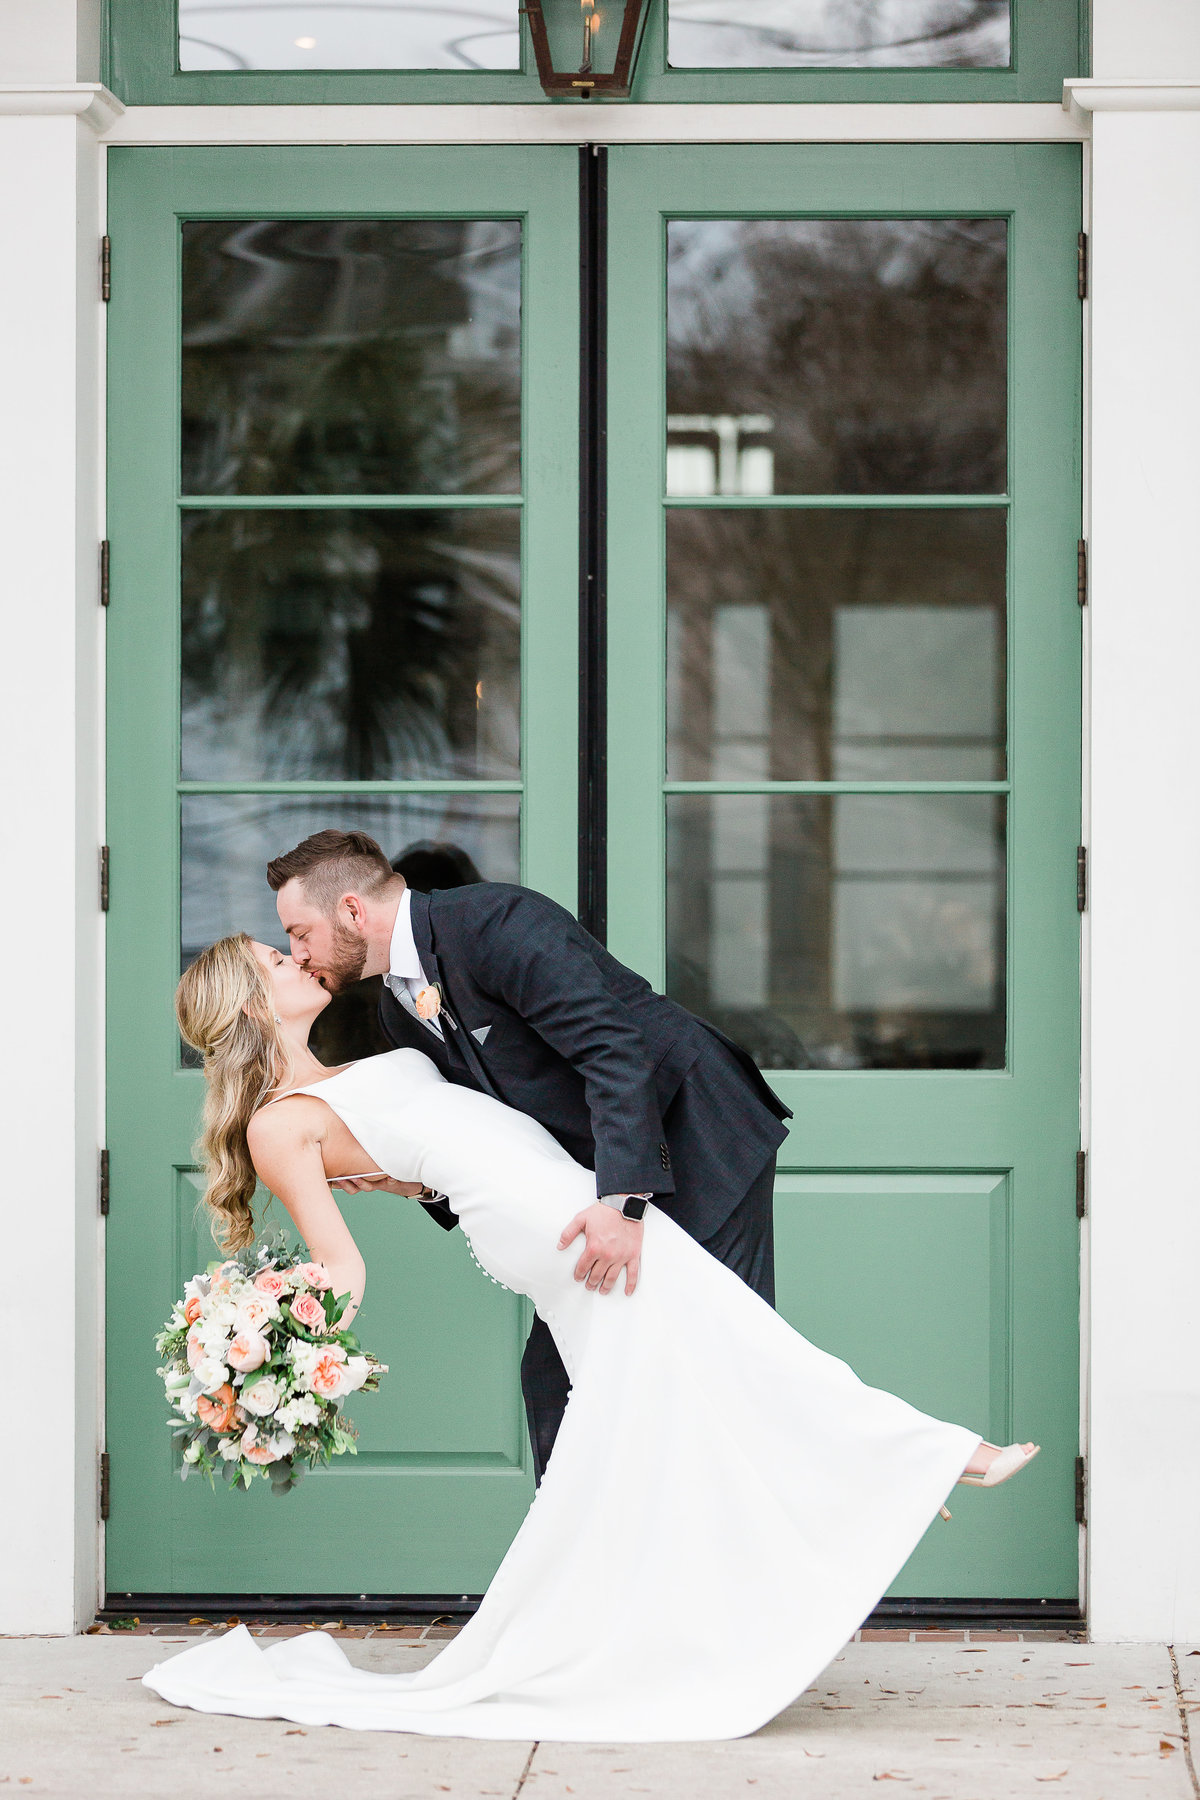 Charleston Weddings- Nancy Lempesis Photography - Wedding Phtography (82)